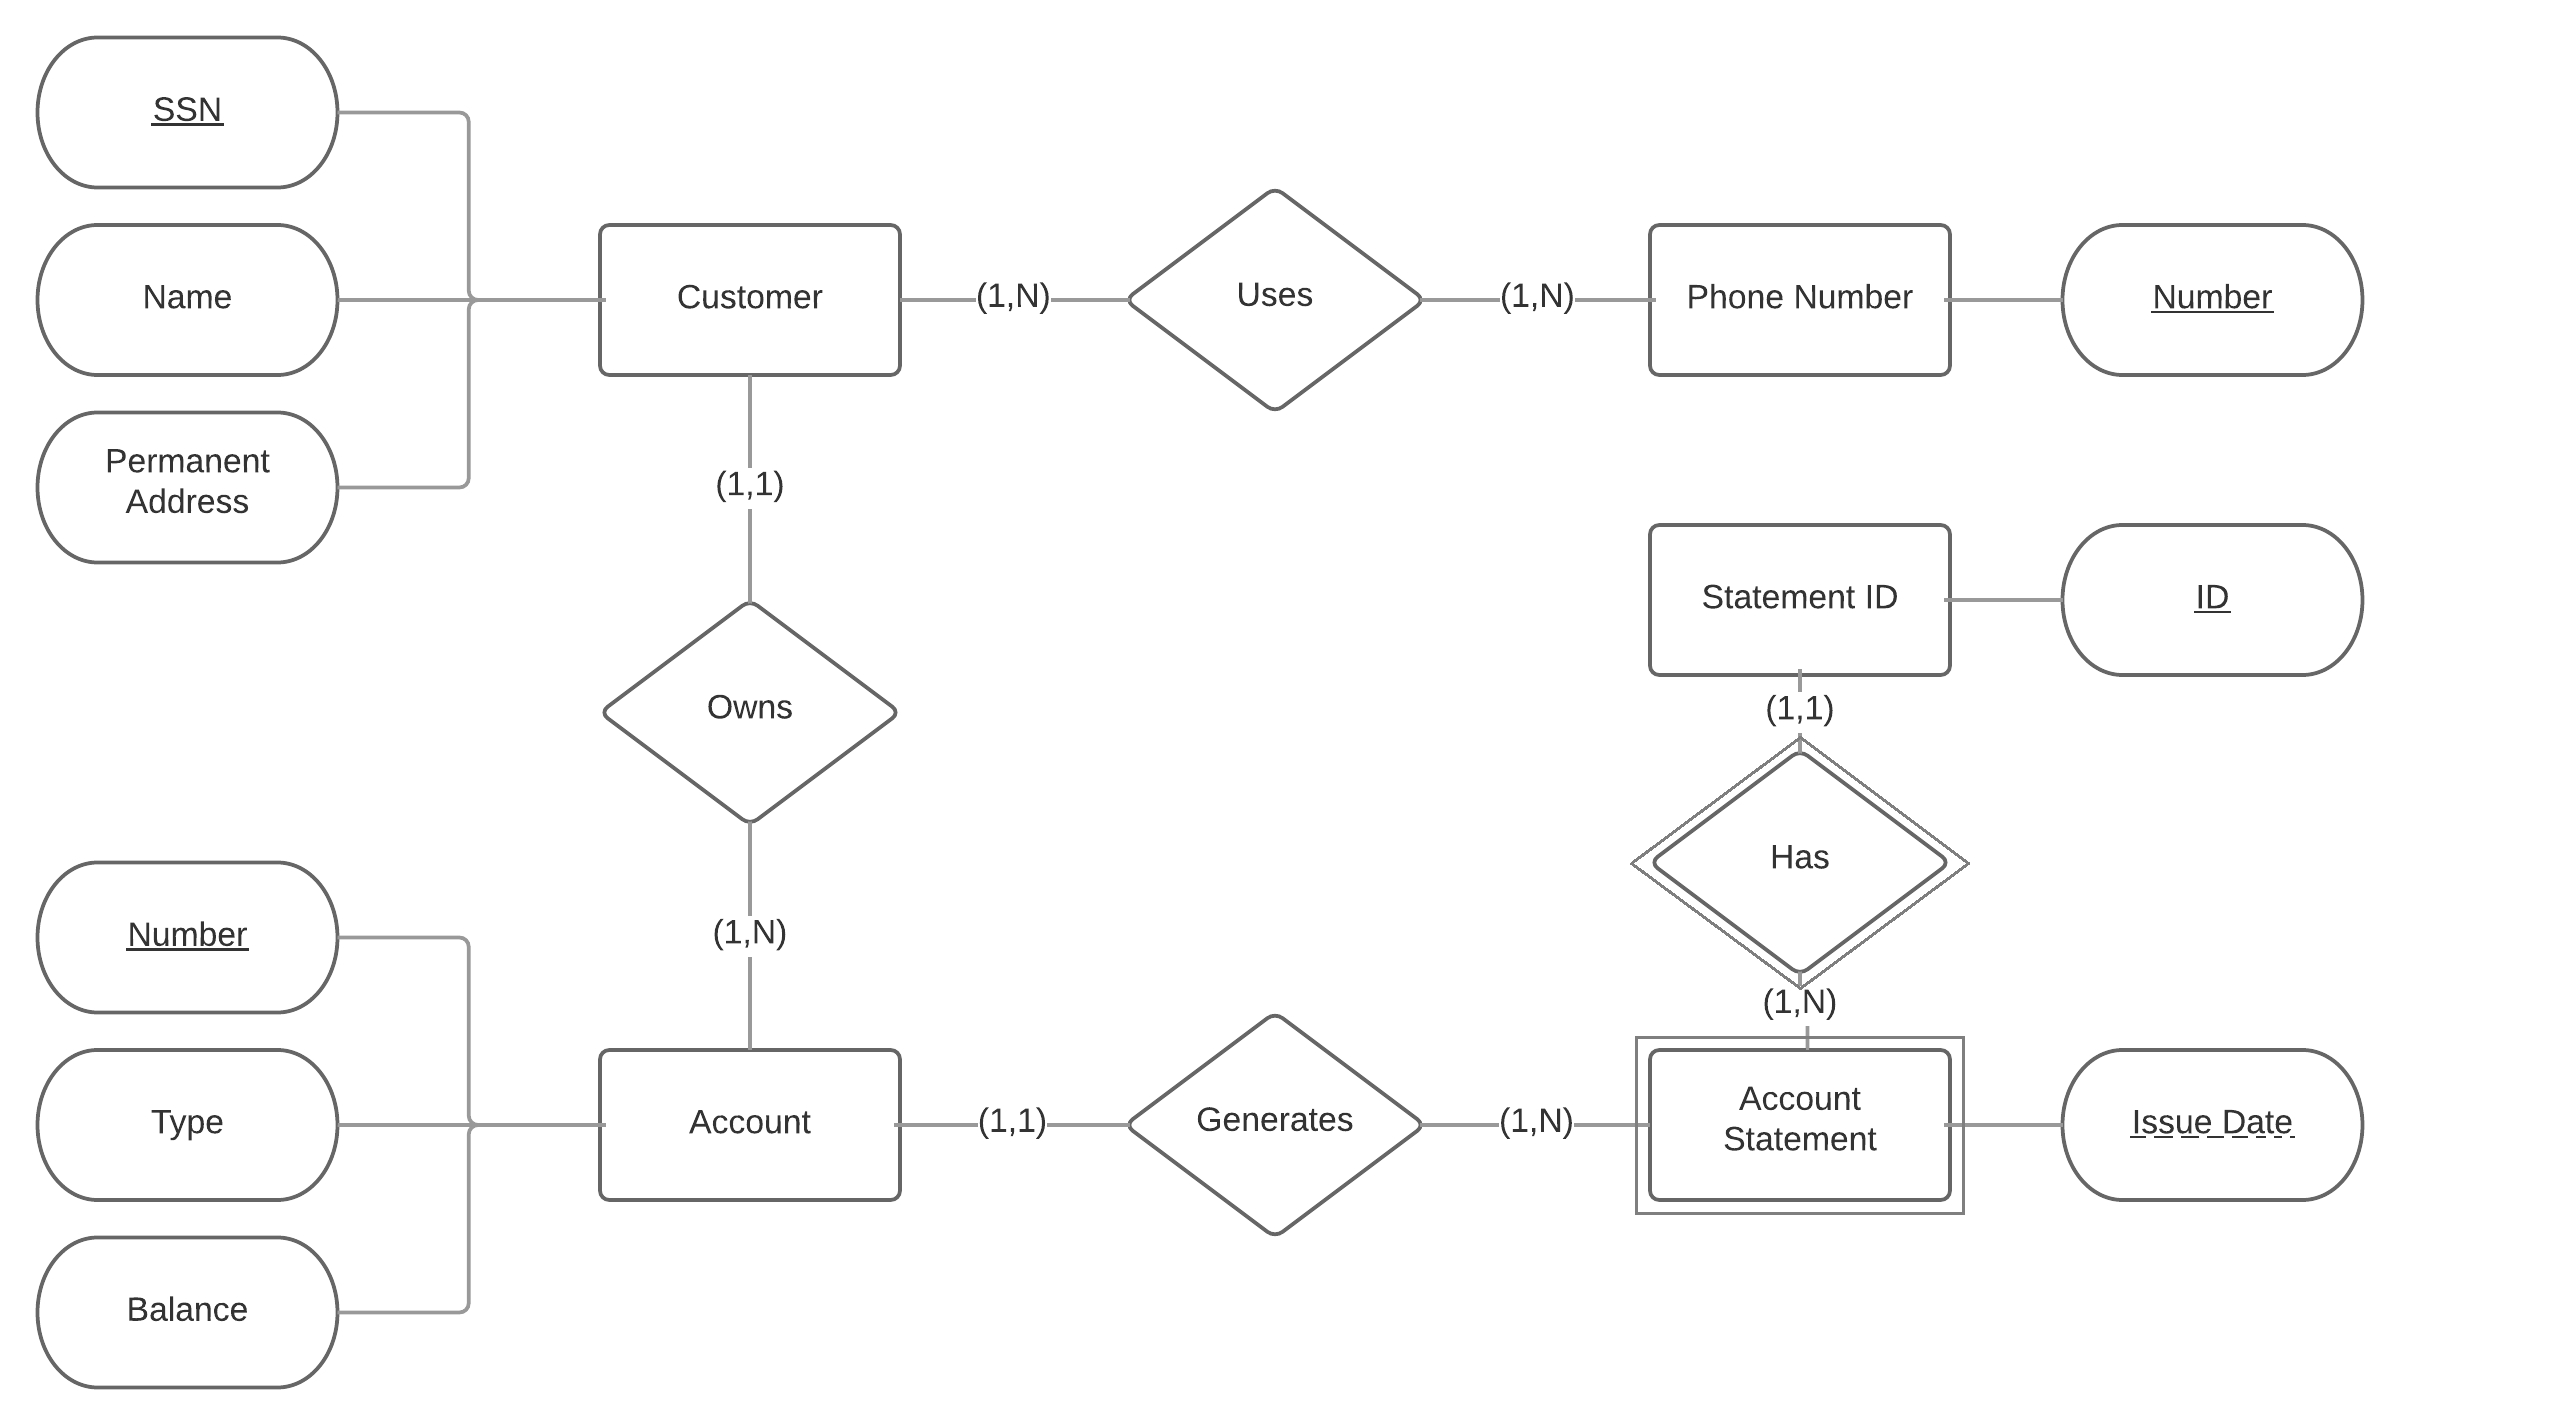 Is This Er Diagram Correct? - Stack Overflow regarding Er Diagram Examples With Problem Statement